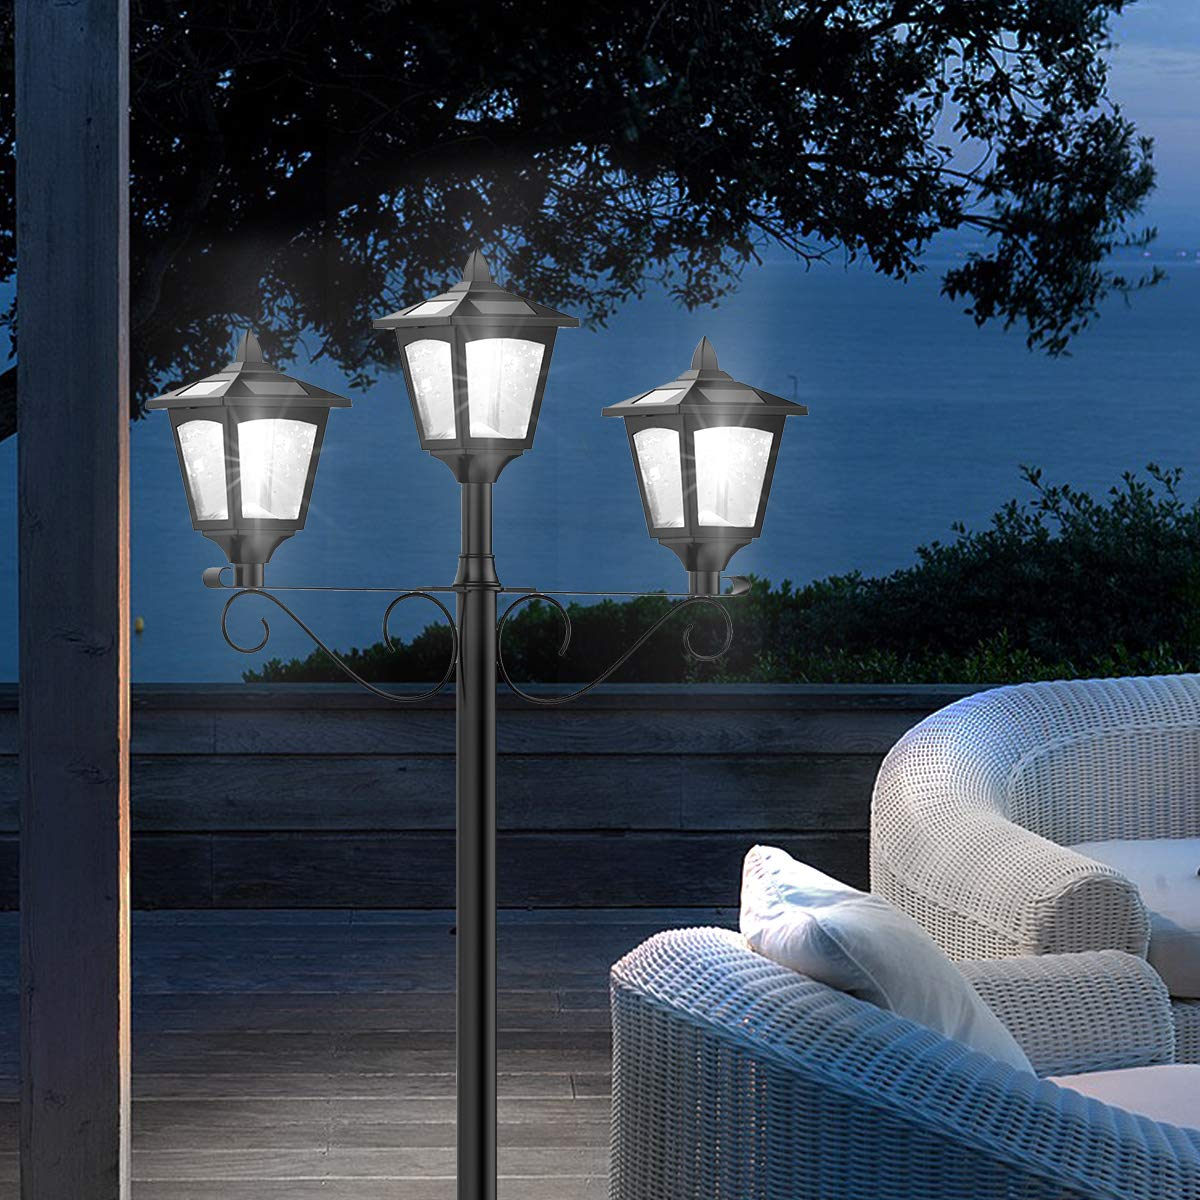 72'' Solar Lamp Post Lights Outdoor, Triple-Head Street Vintage Solar Lamp Outdoor, Solar Post Light for Garden, Lawn, Planter Not Included by Greluna (Image #7)